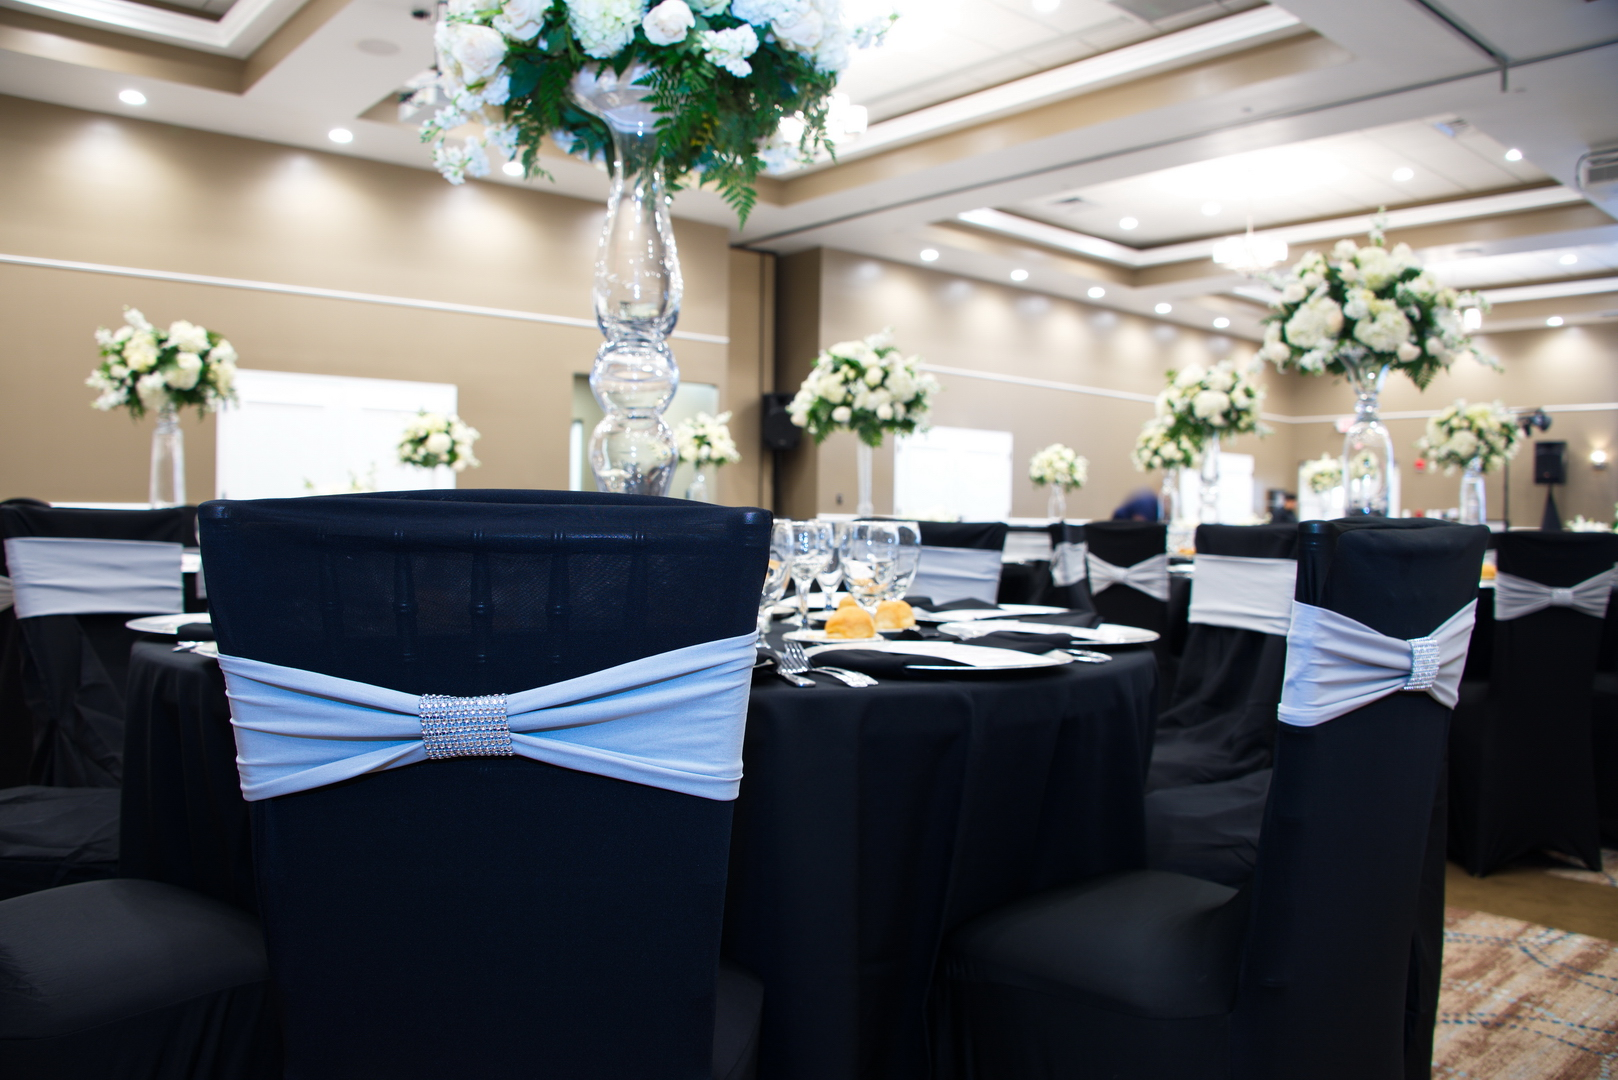 Chair covers Oasis at Palm Shores